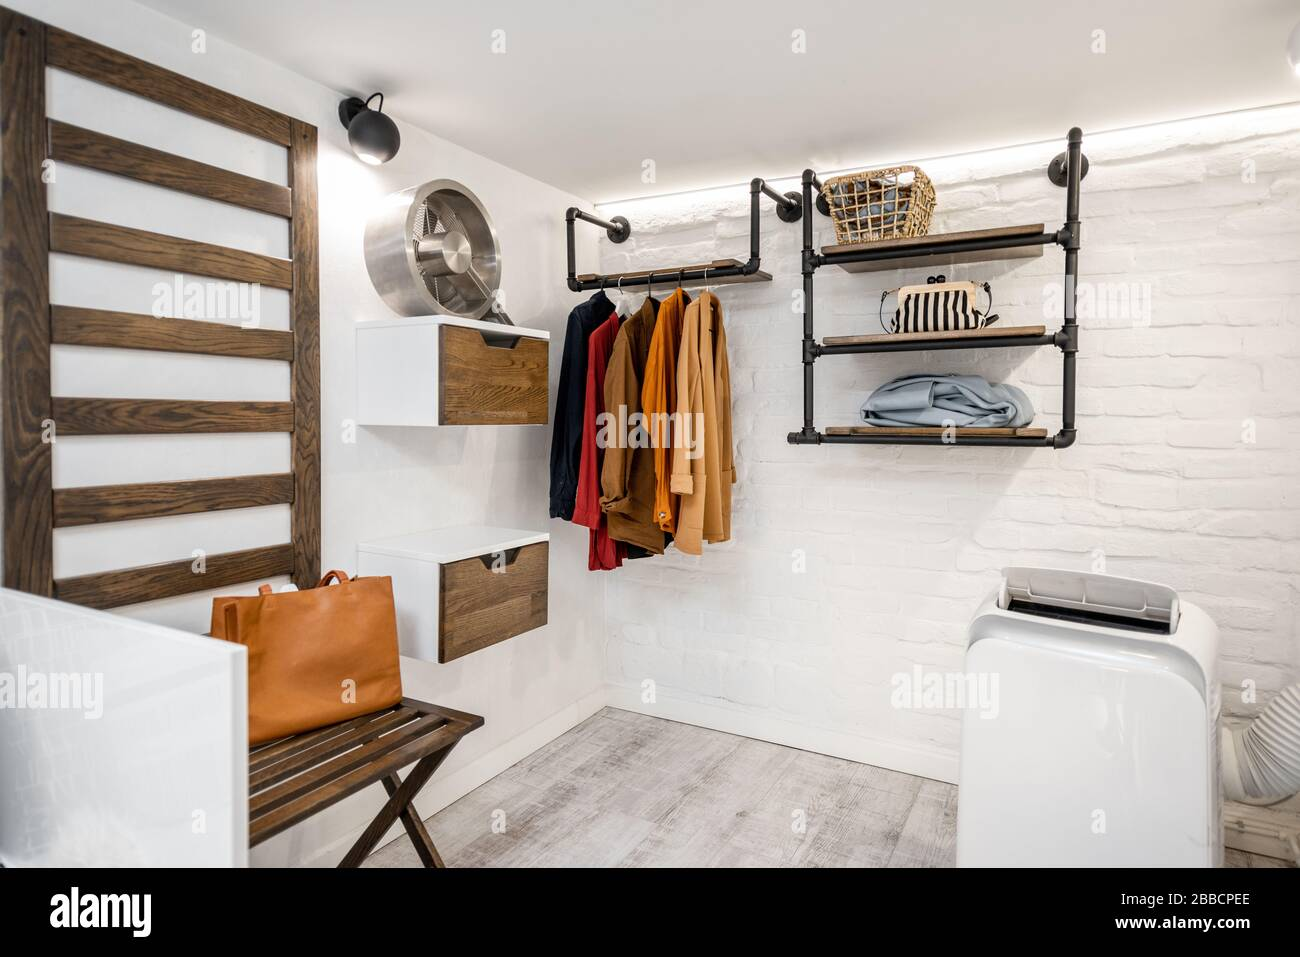 Modern Wardrobe Or Small Clothes Store Interior With Garment Stock Photo Alamy